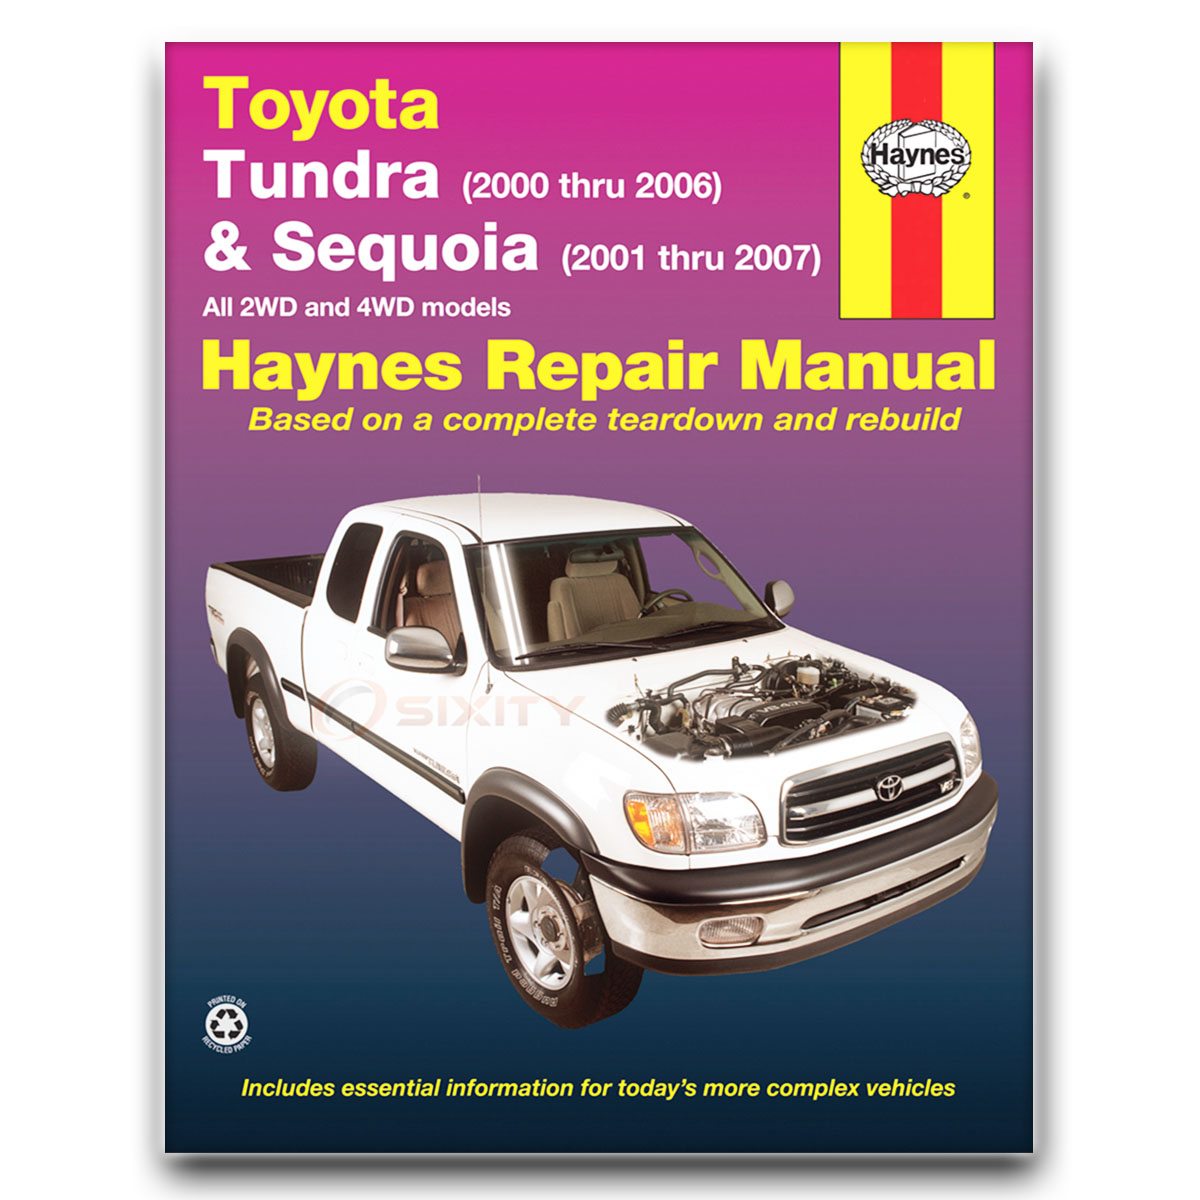 toyota tundra haynes repair manual limited sr5 base shop service rh ebay com Tundra Manual Transmission 2018 Tundra Manual Inside